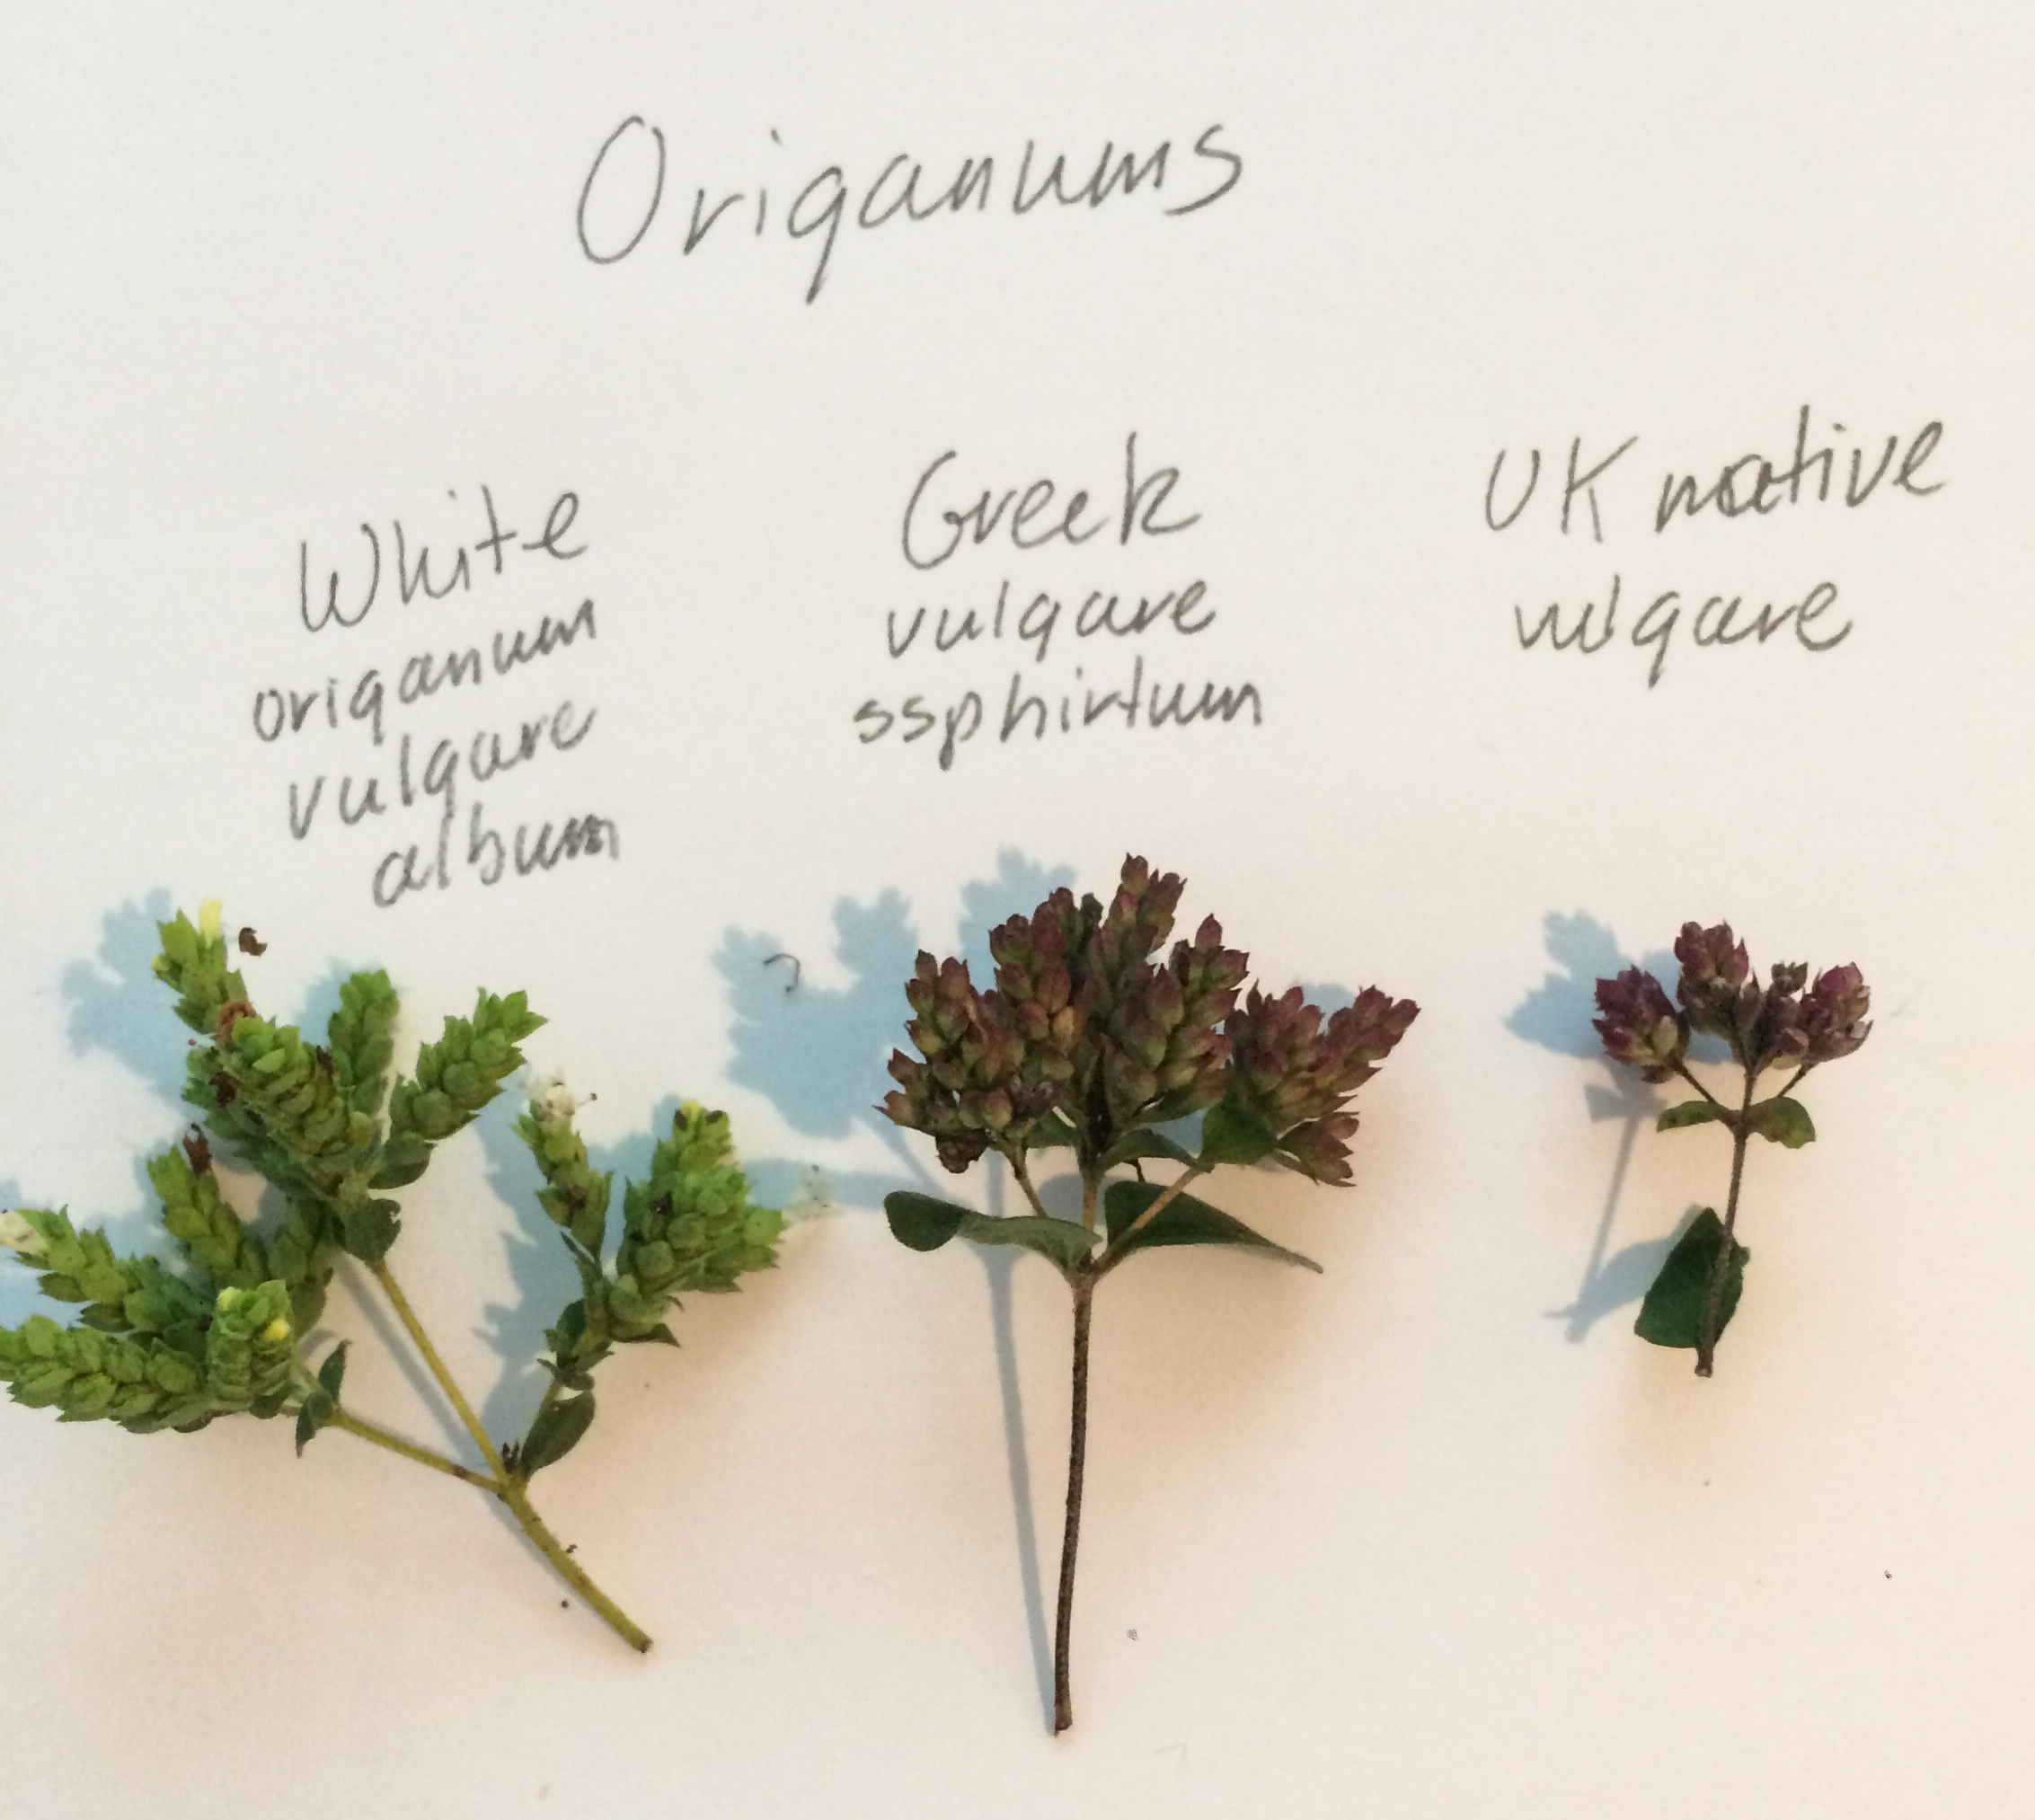 A range of dried origanum samples at rosybee